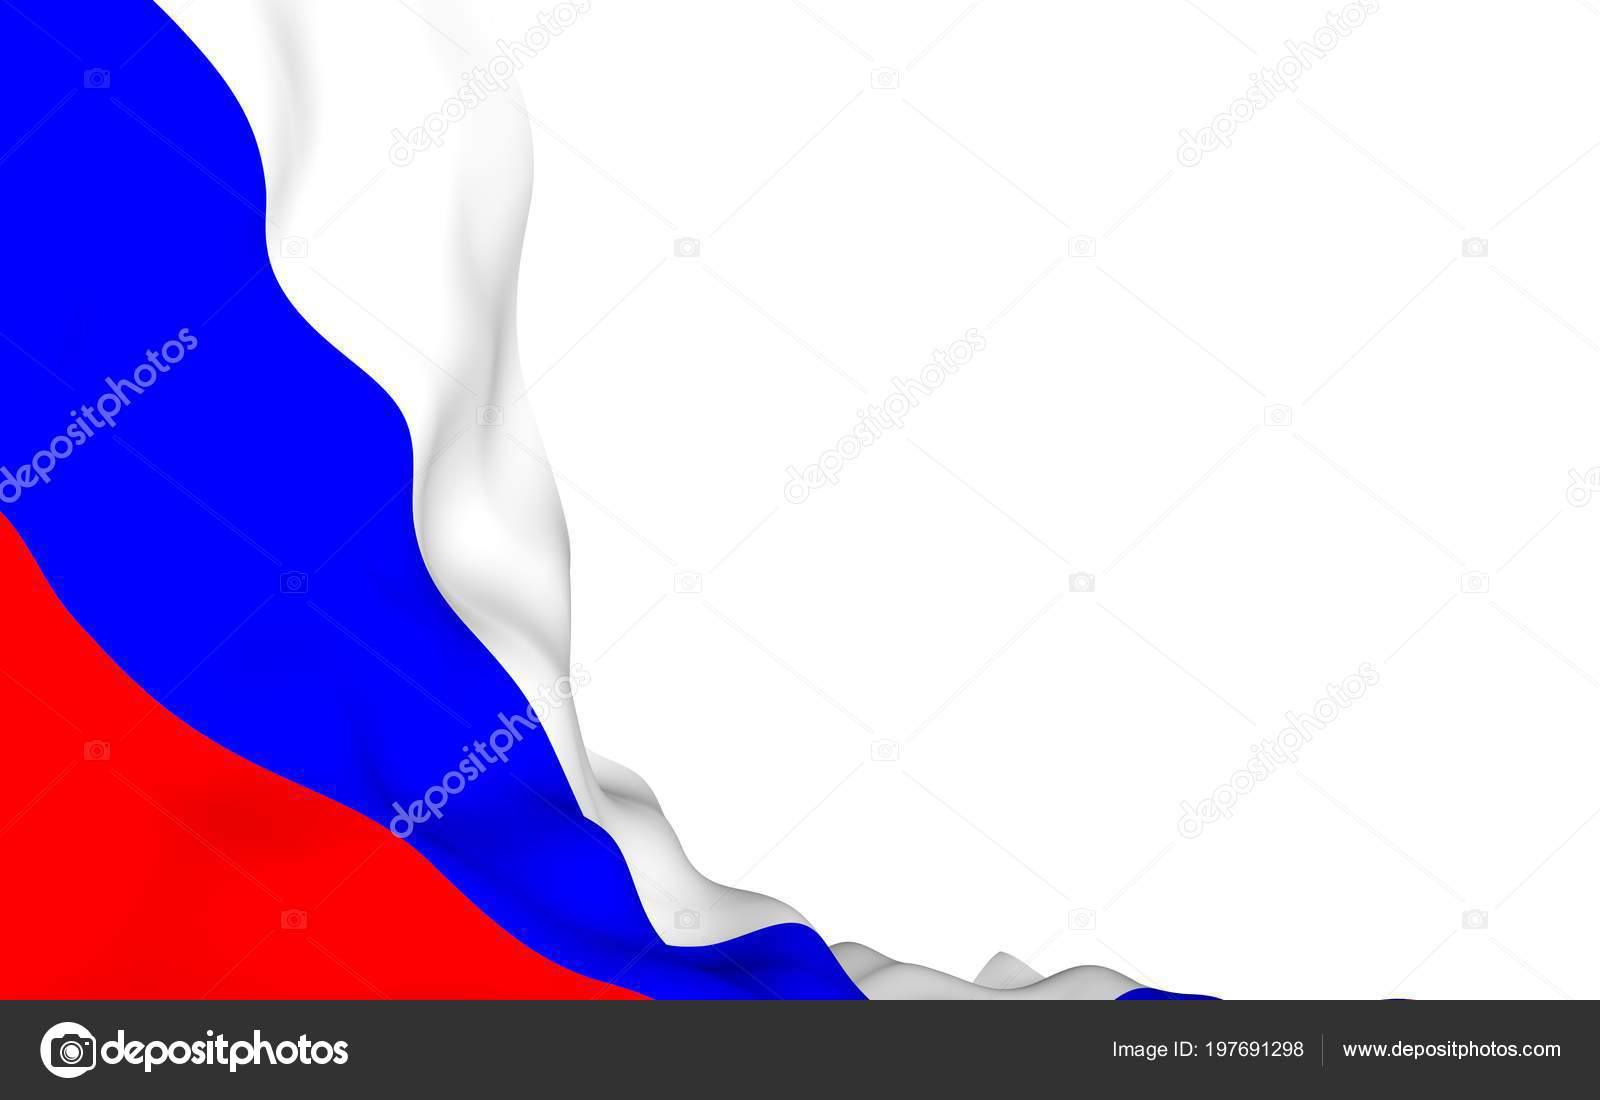 Waving Flag Of The Russian Federation The National State Symbol Of